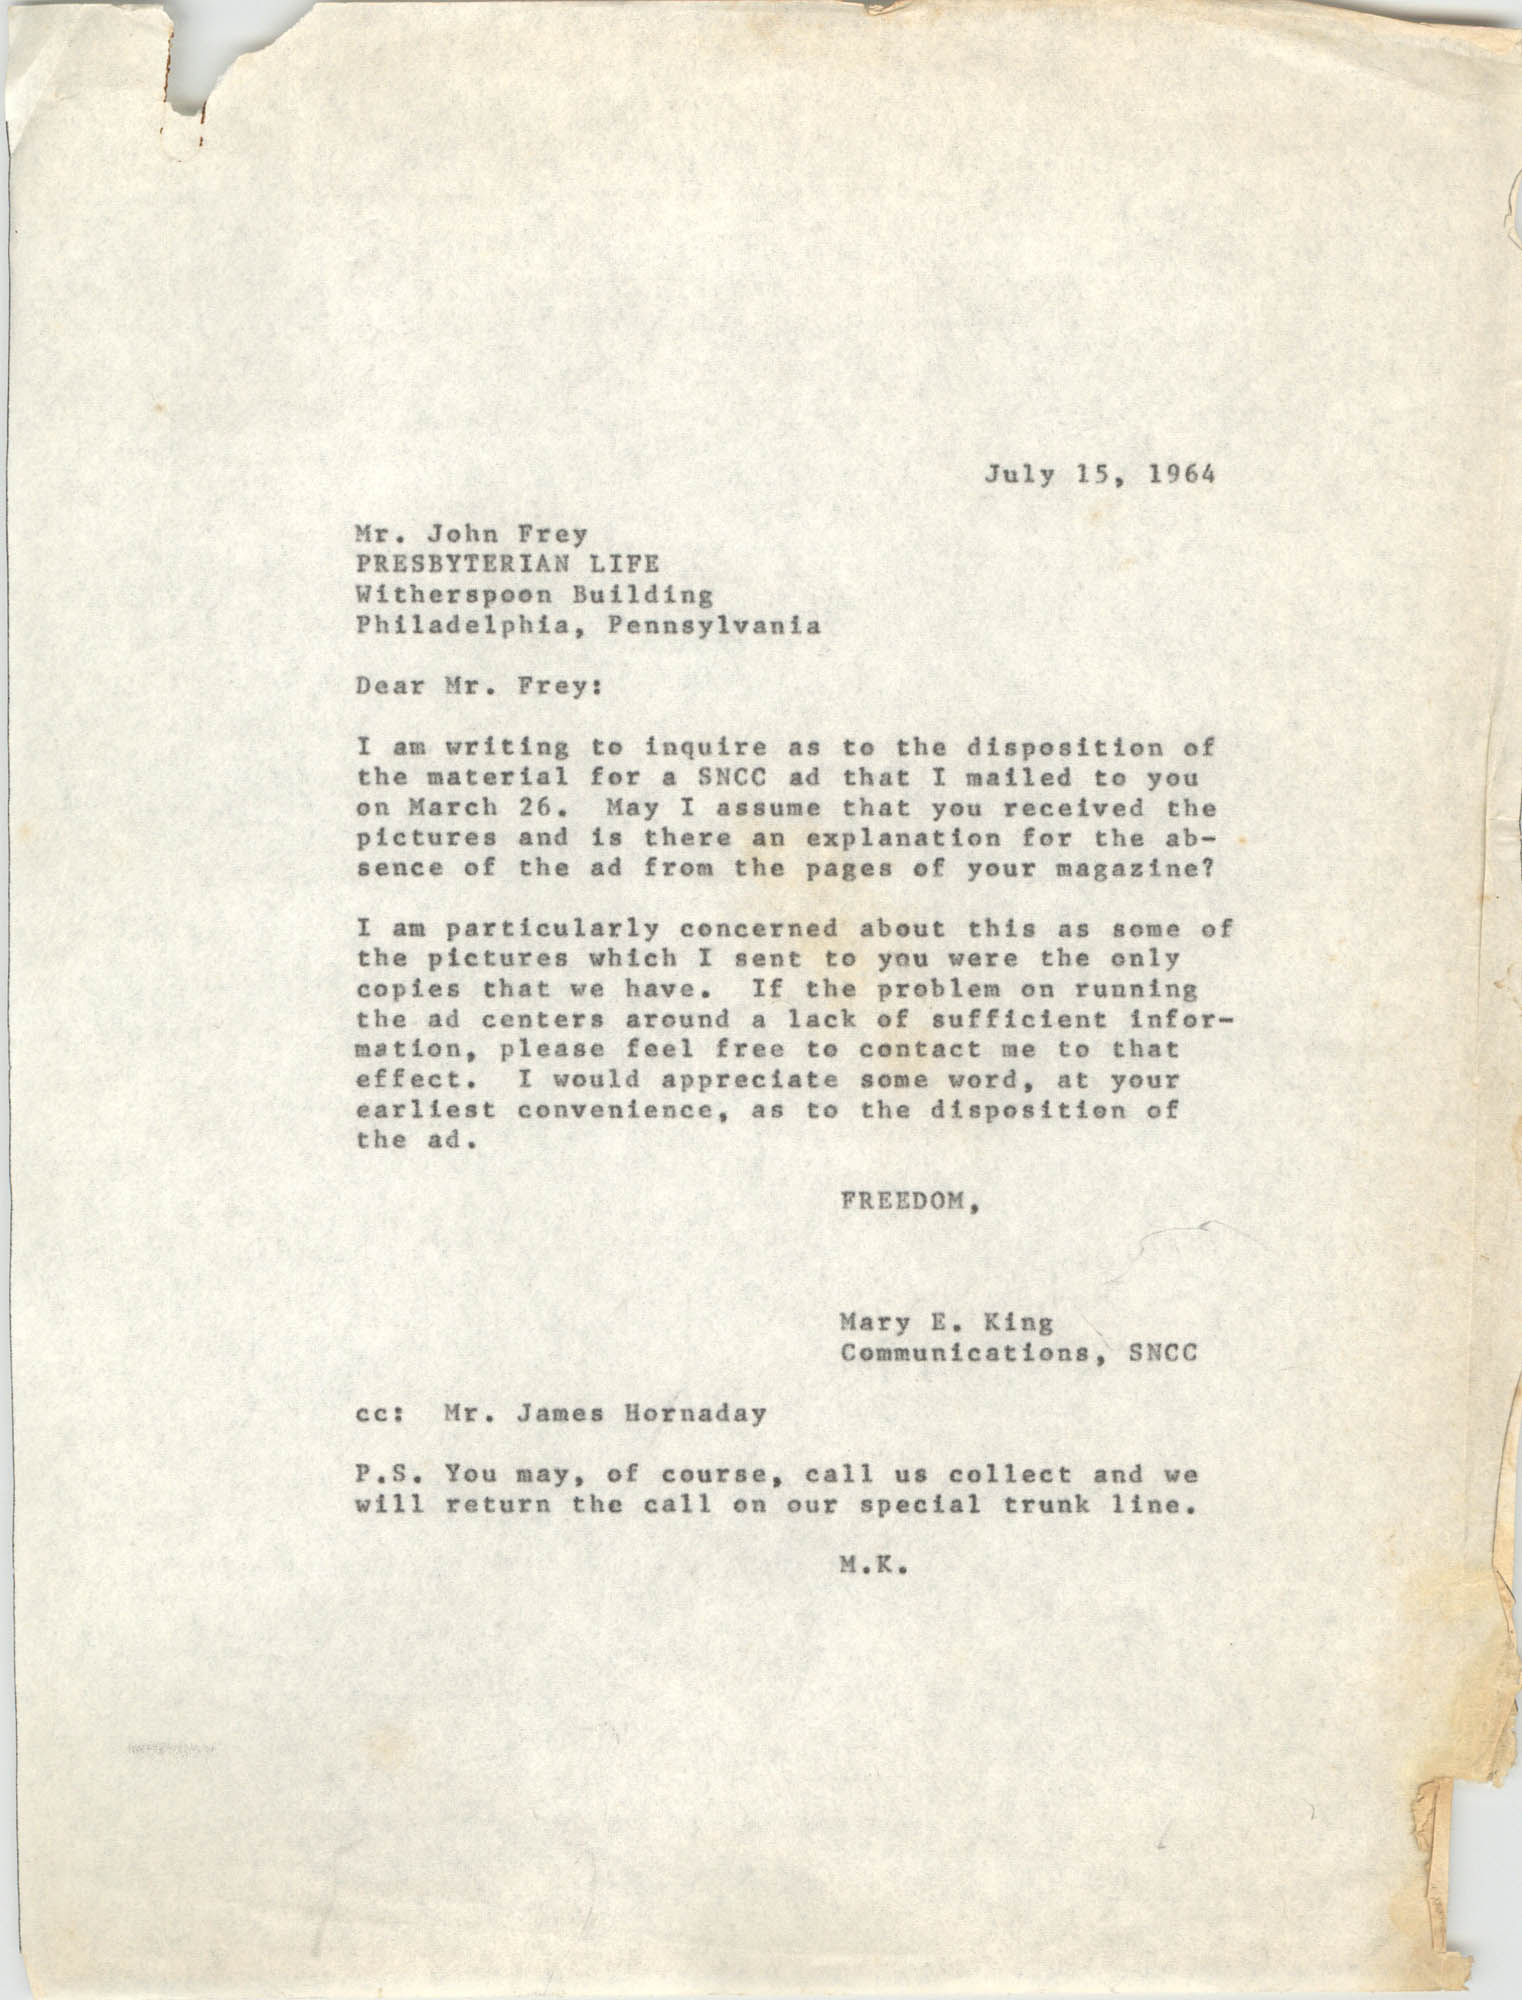 Letter from Mary E. King to John Frey, July 15, 1964